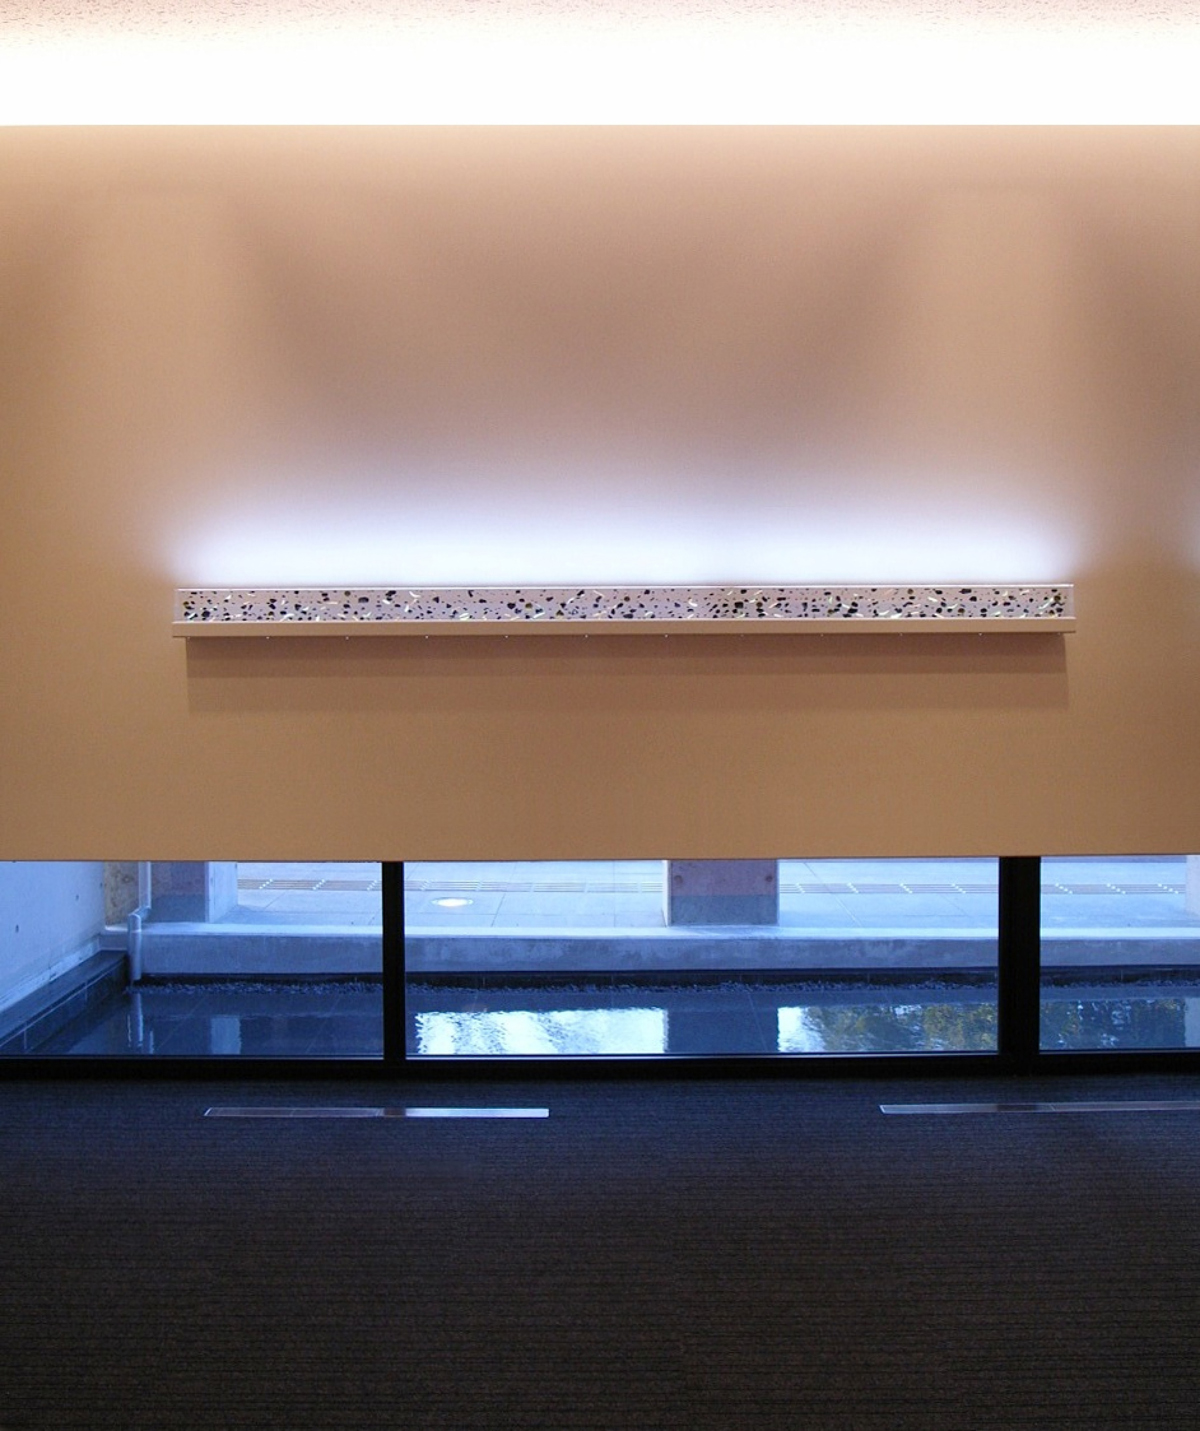 Untitled, 2011, installation view at Saiseikai Iizuka Kaho Hospital, Iizuka, Japan photo Tomo Hirao